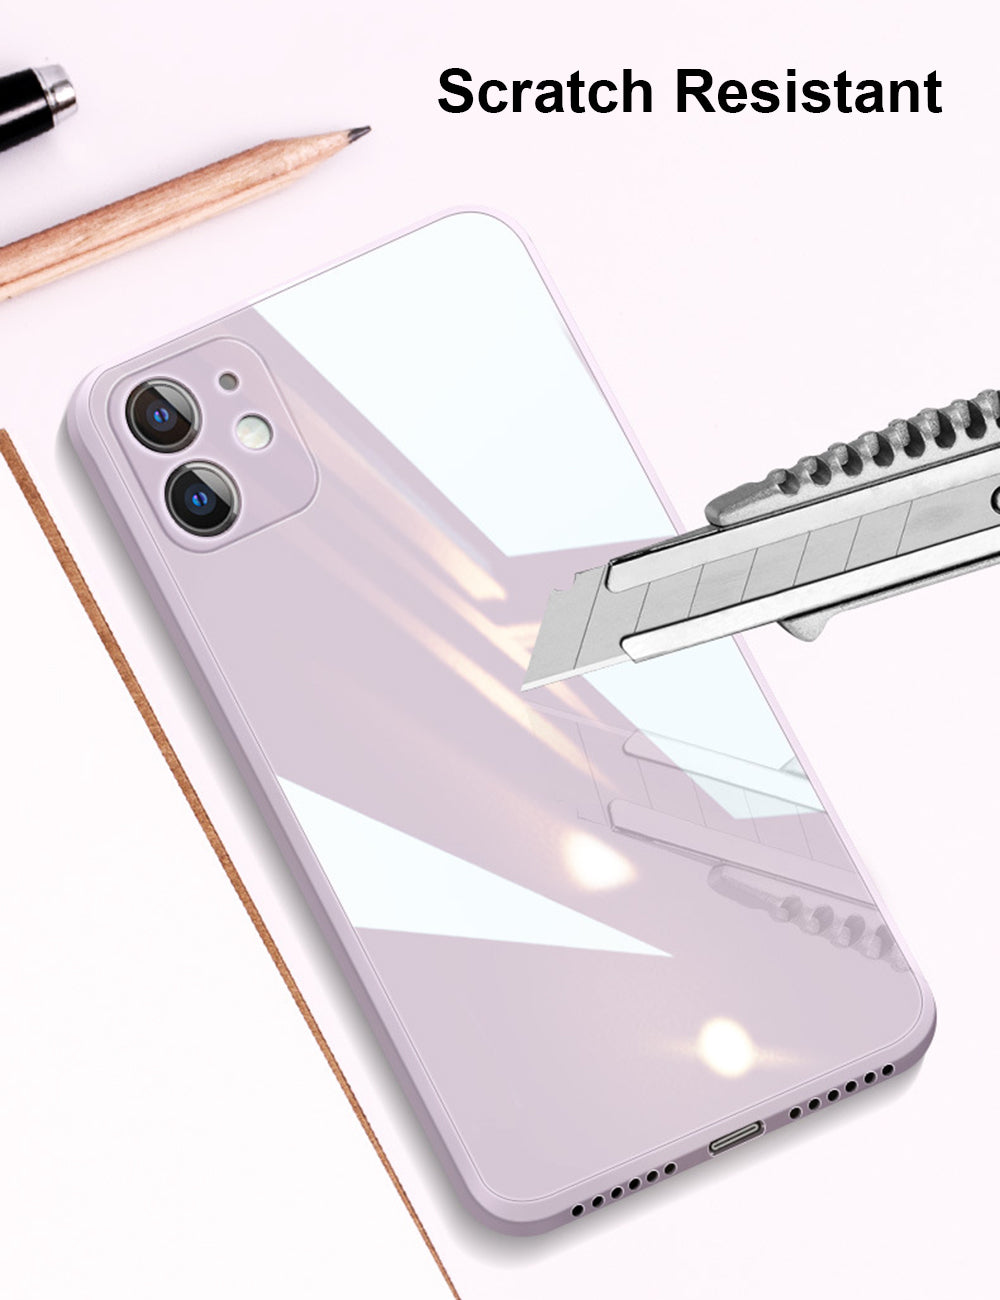 Liquid Glass Phone Case For iPhone 11 12 Pro Max XR X XS Max SE 2020 8 7 6s Plus Tough Scratch-Resistant Tempered Back Cover Soft Frame Case for iPhone